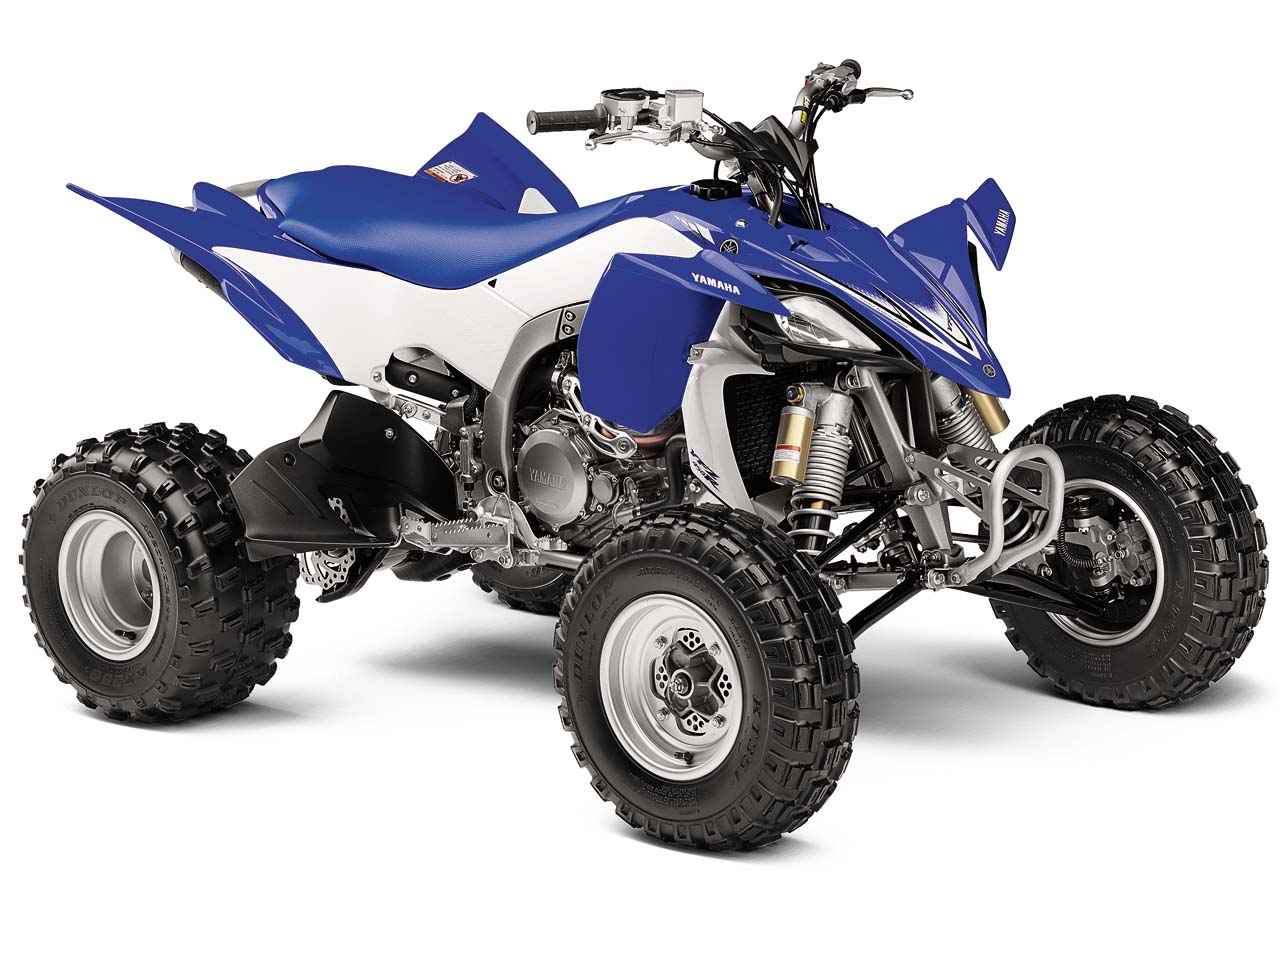 yamaha announces 2011 yfz450r and yfz450x sport atvs atv illustrated. Black Bedroom Furniture Sets. Home Design Ideas